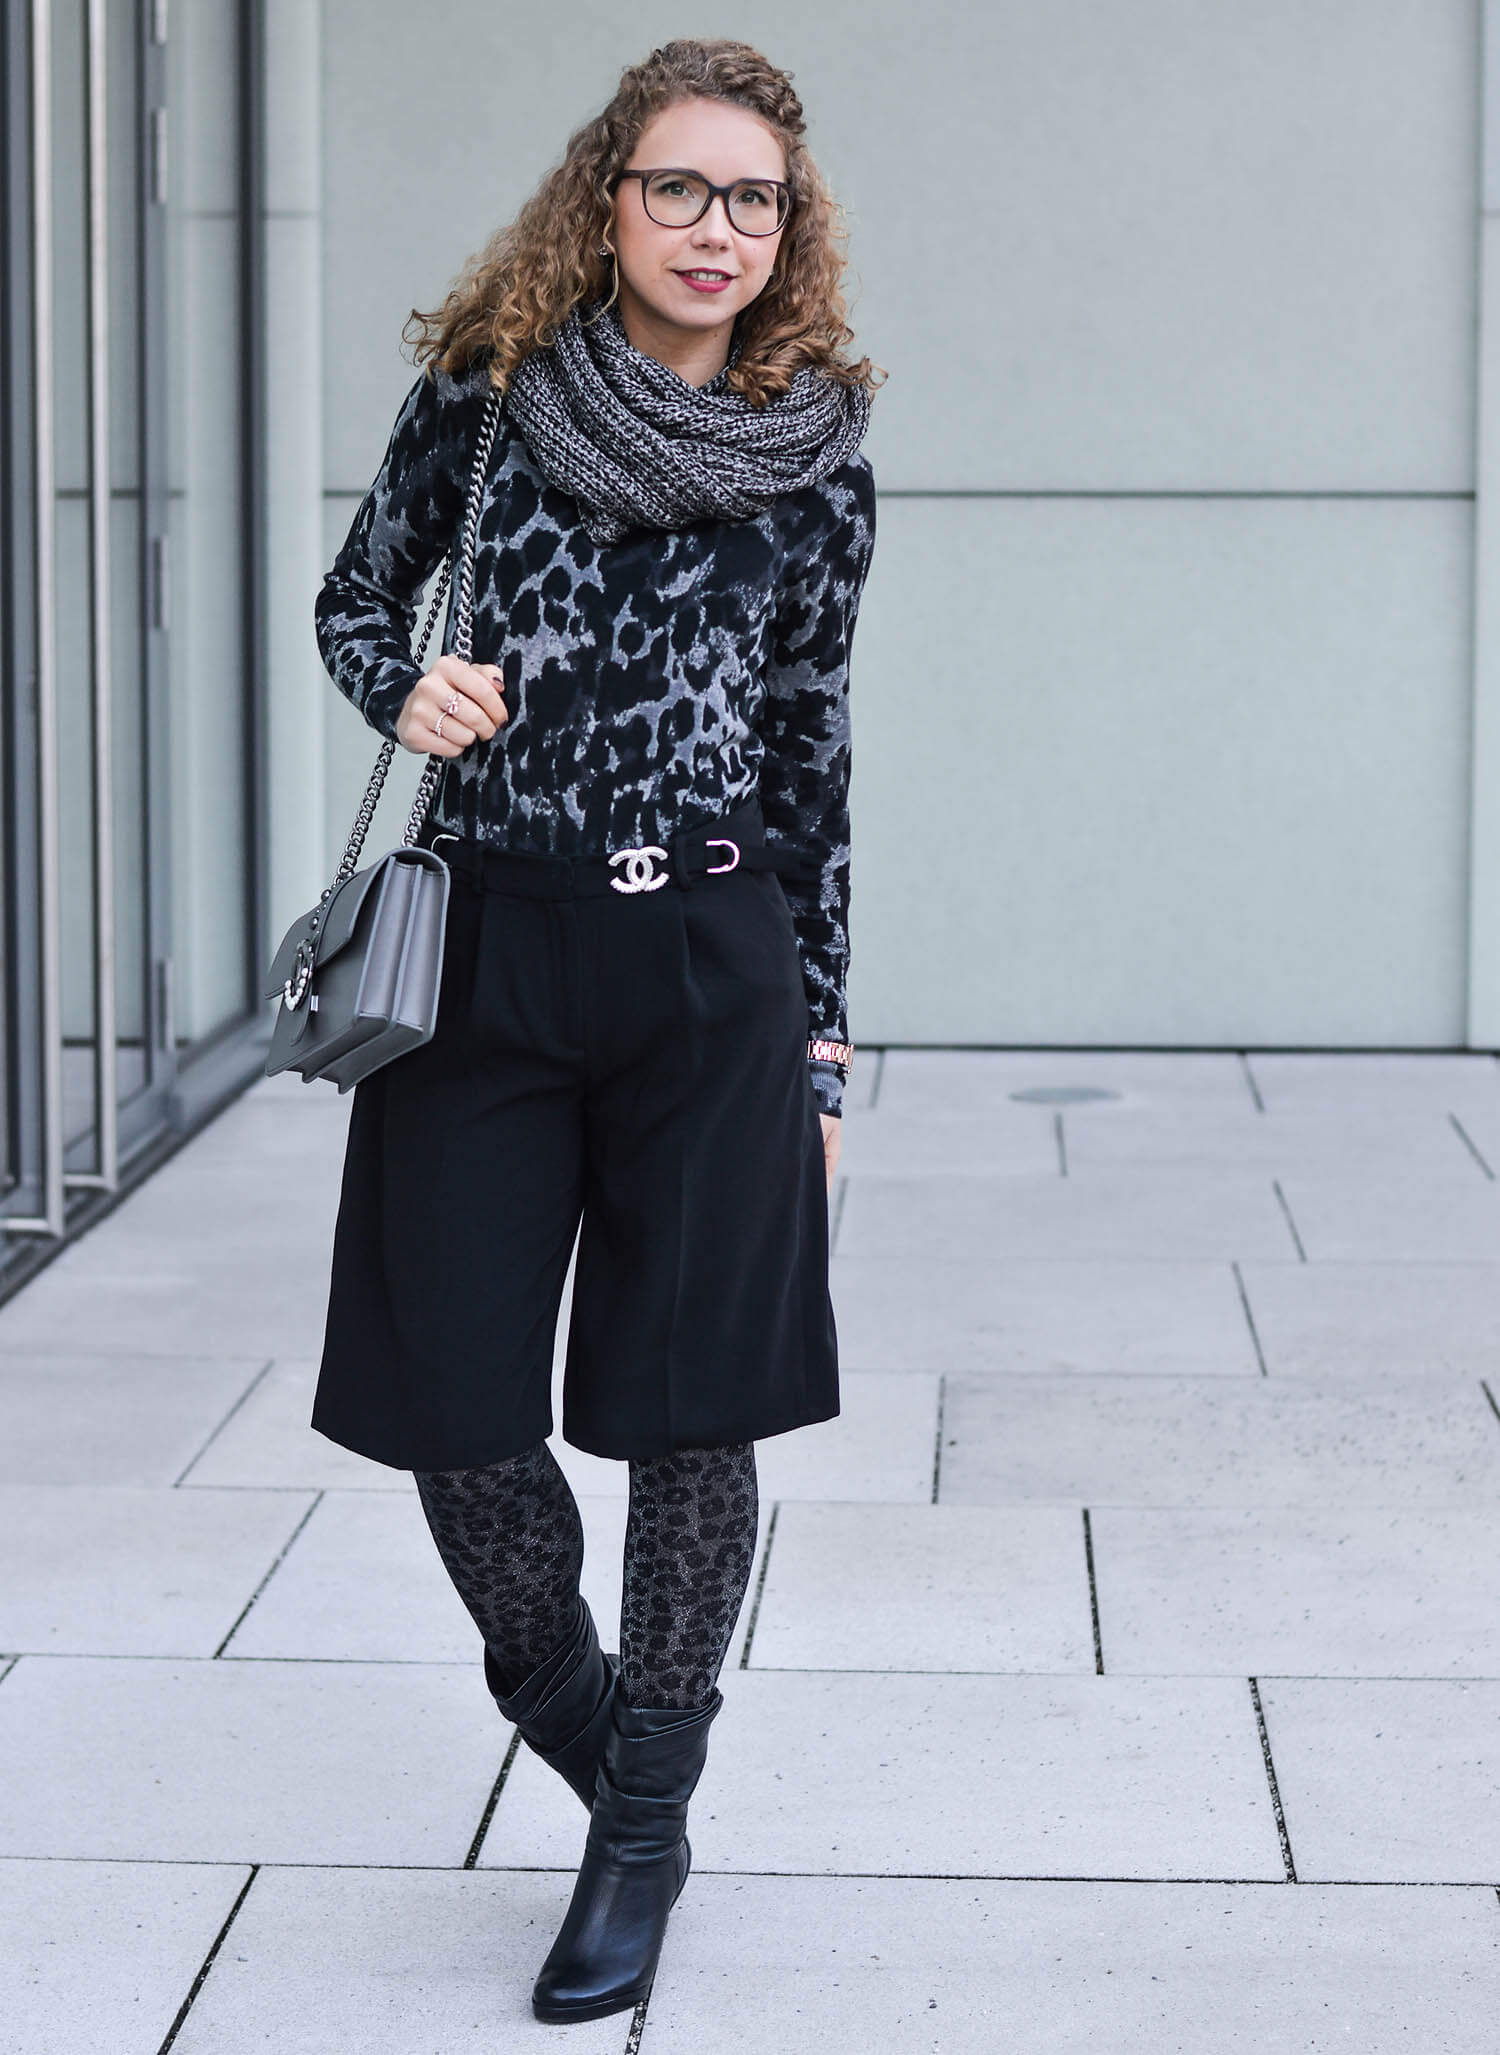 Kationette-Outfit-Grey-Leopard-with-Drykorn-sweater-and-Calzedonia-tights-fashionblogger-nrw-streetstyle